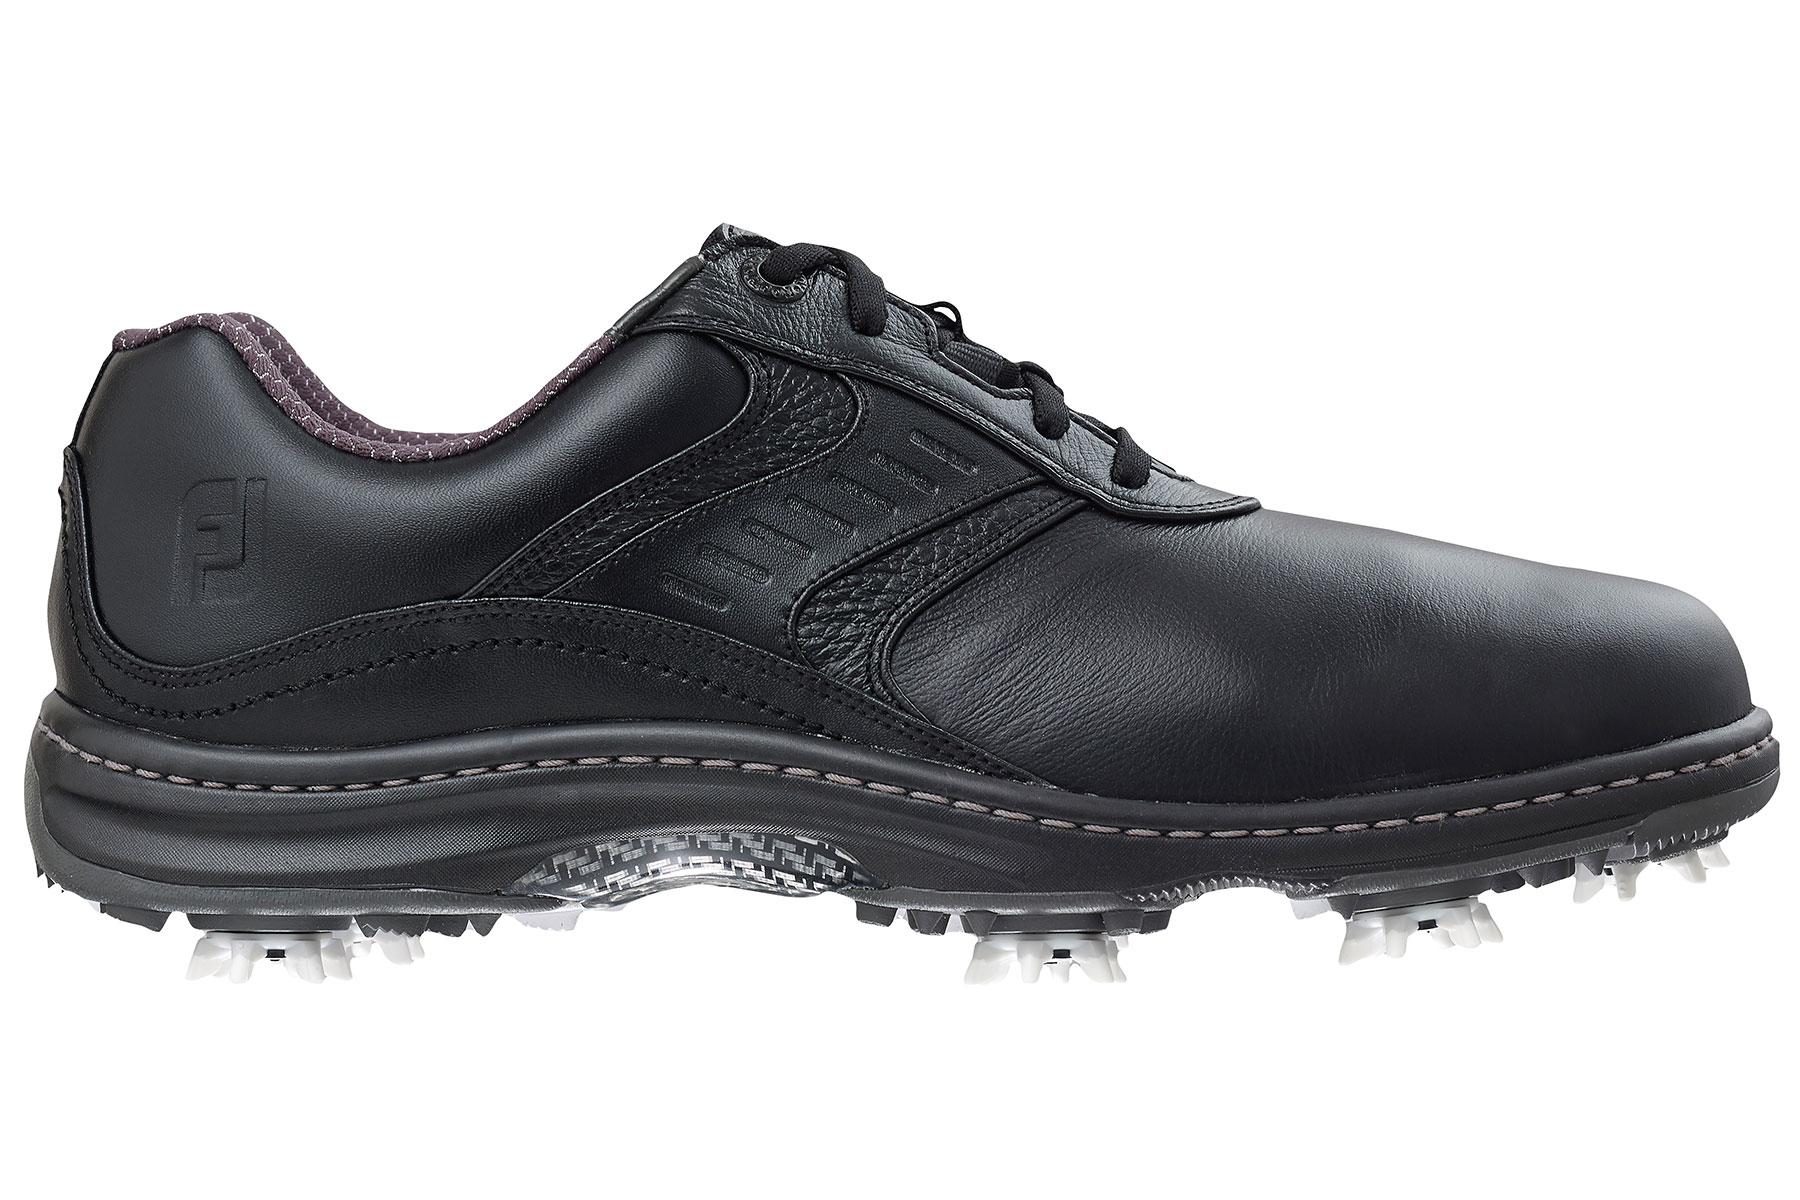 FootJoy Contour Series Shoes from american golf